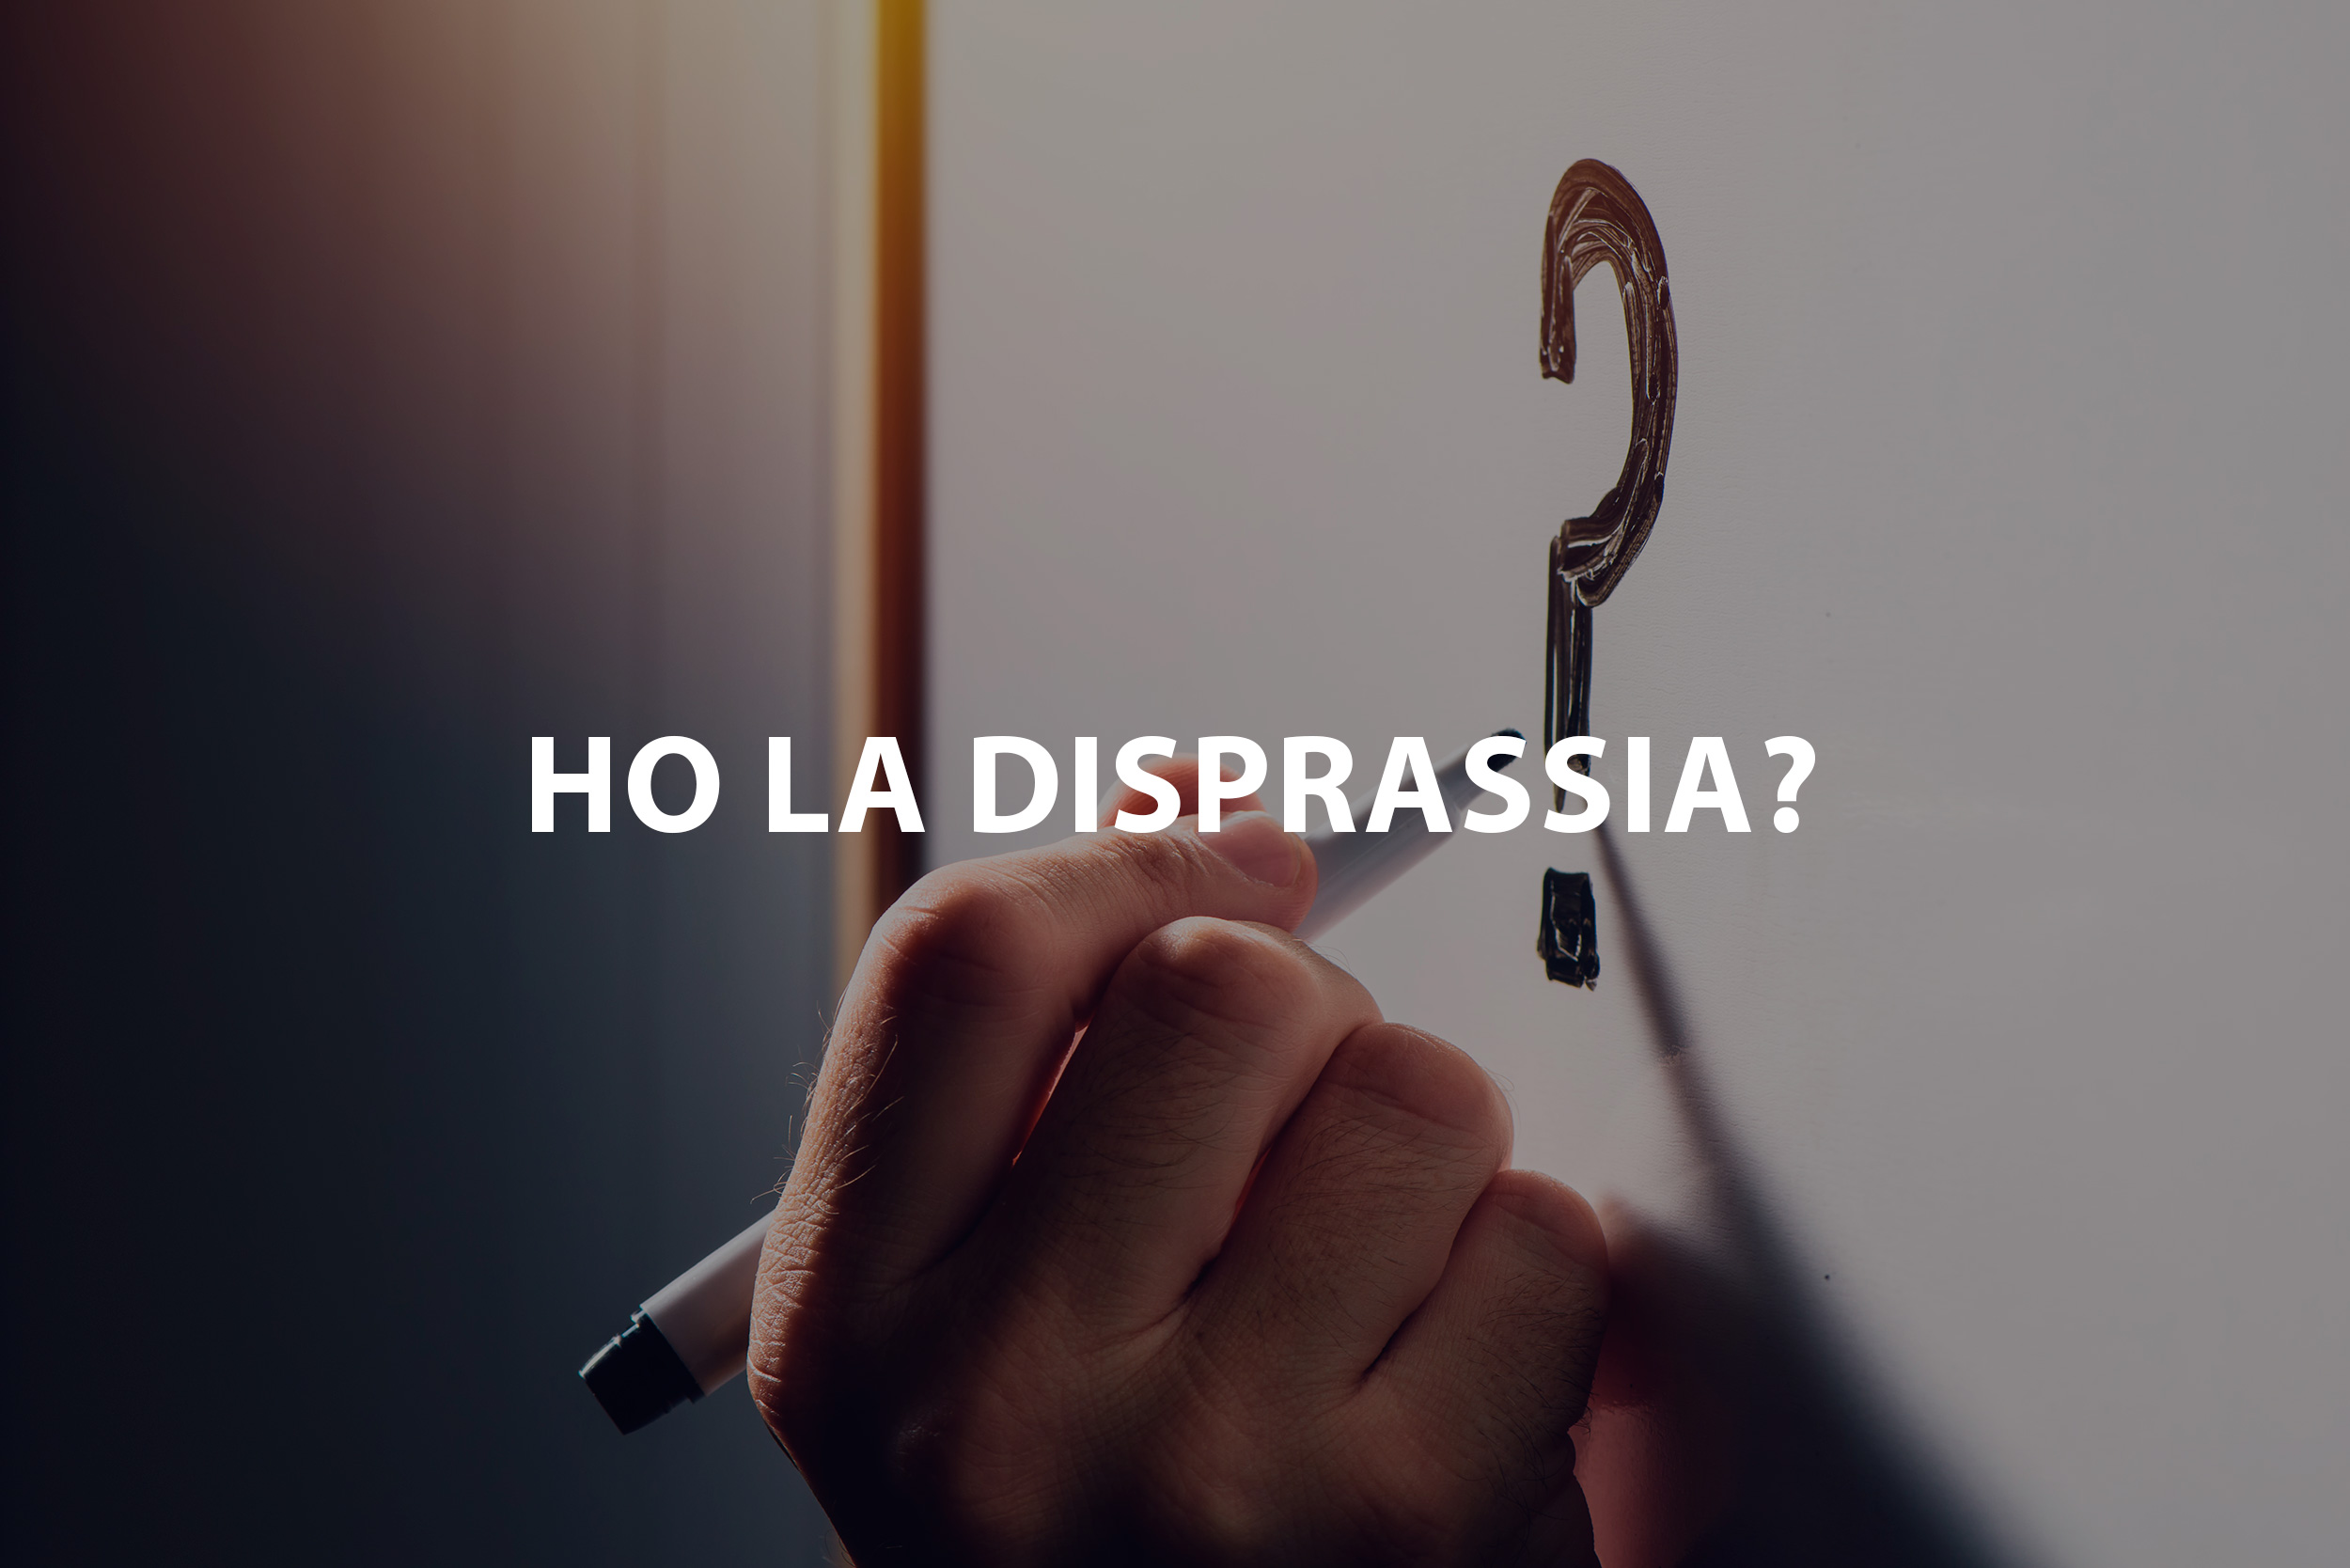 ho la disprassia?